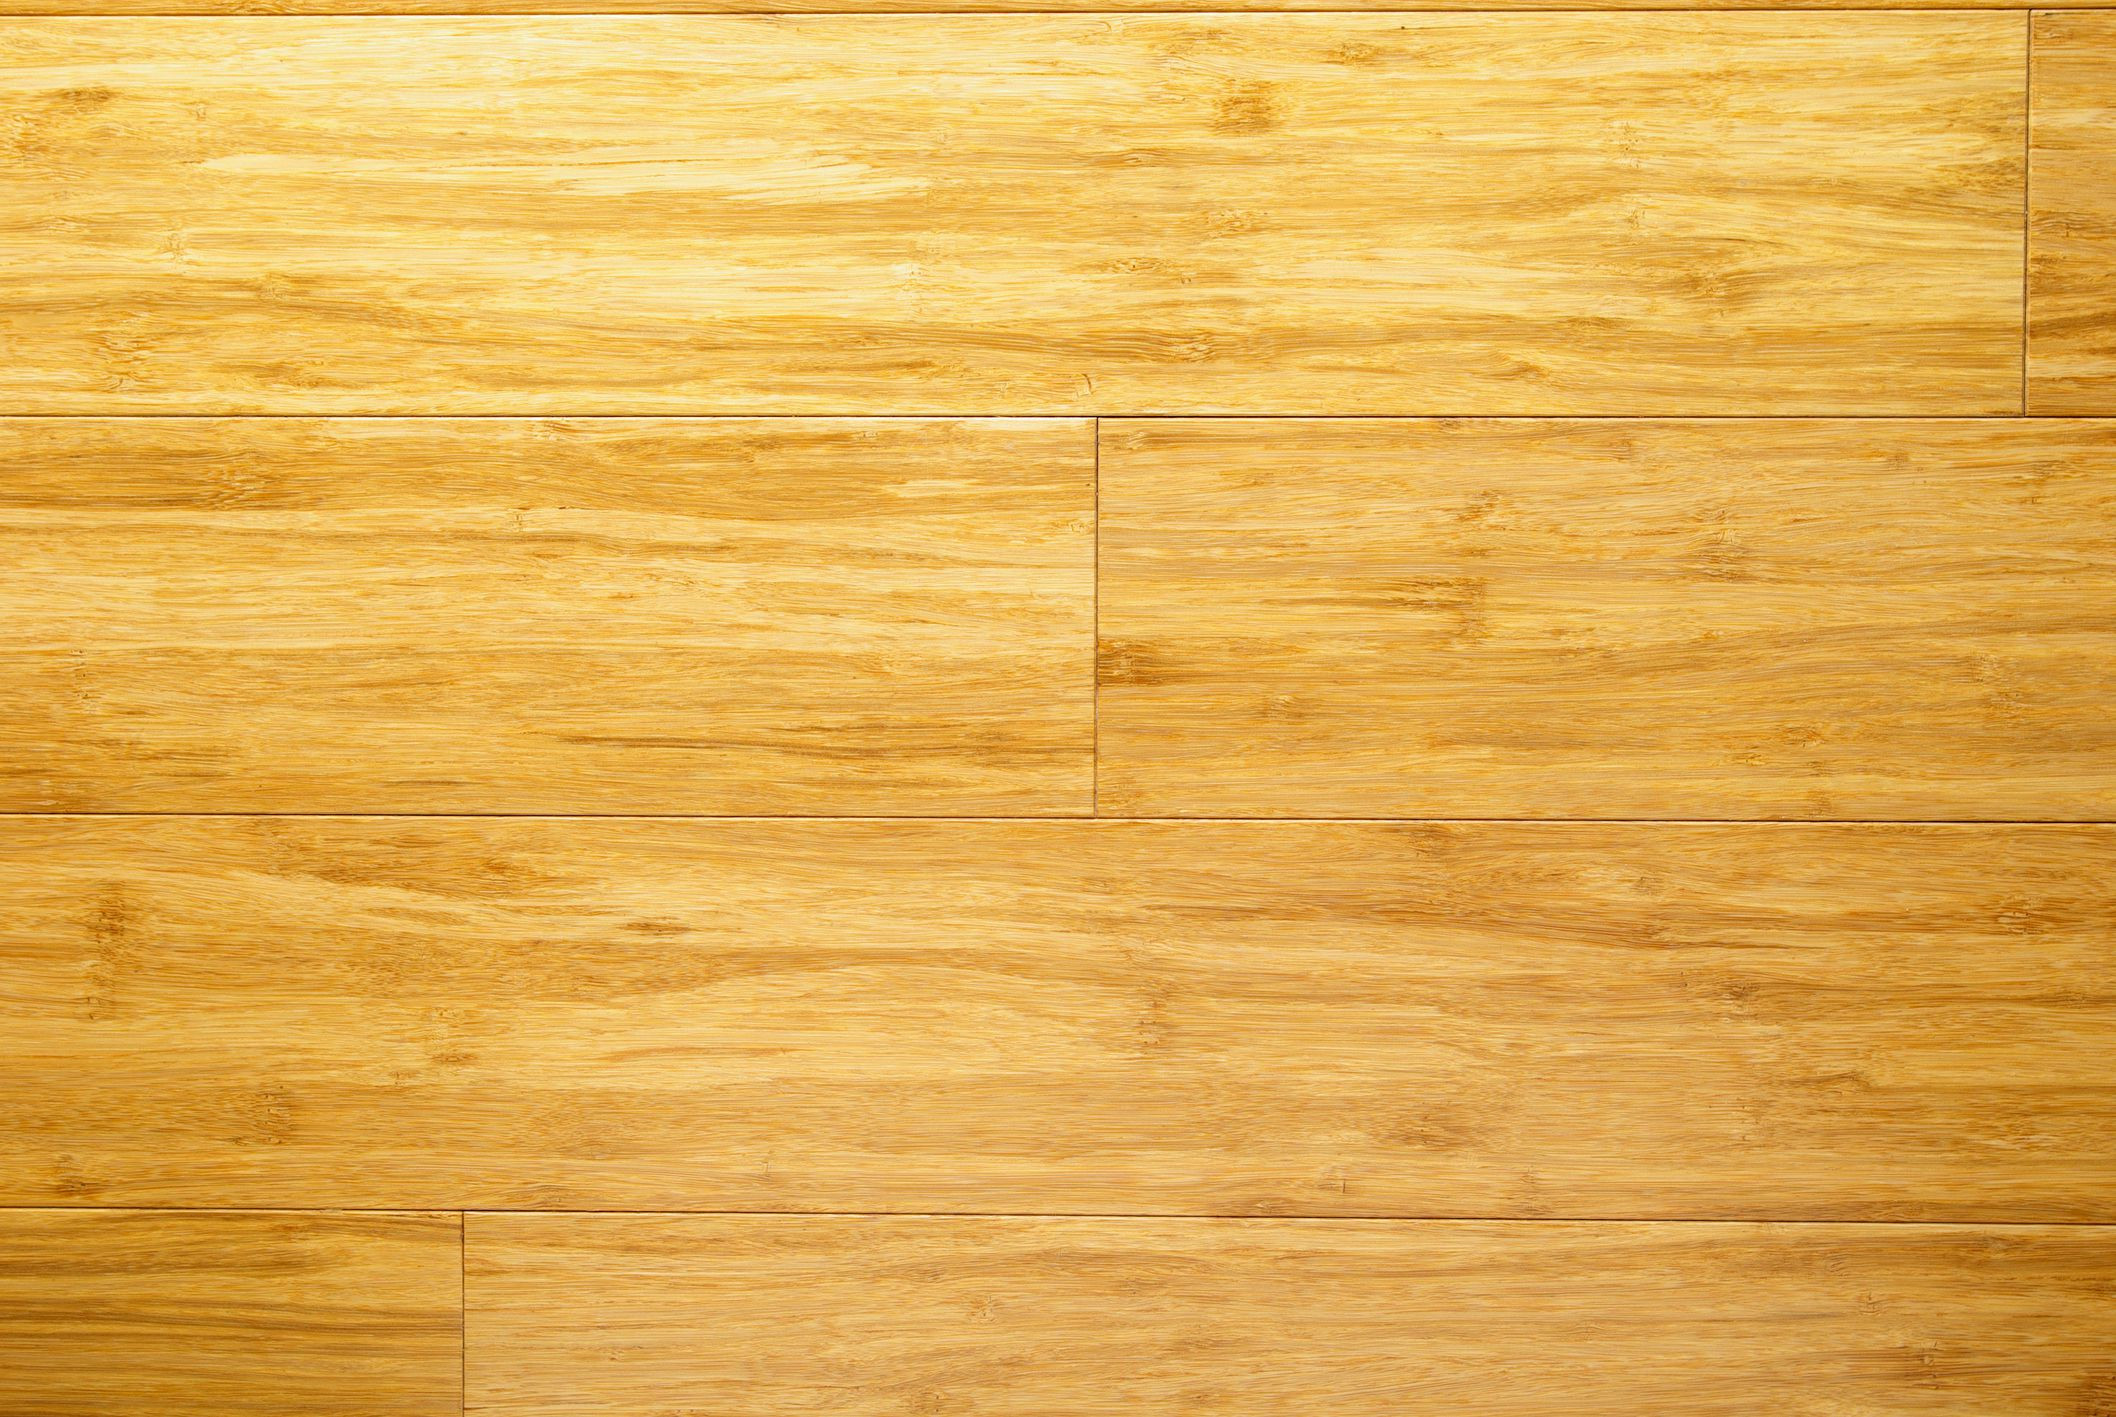 bamboo flooring vs hardwood price of high traffic and commercial bamboo flooring information inside bamboo flooring 58f695a03df78ca159497721